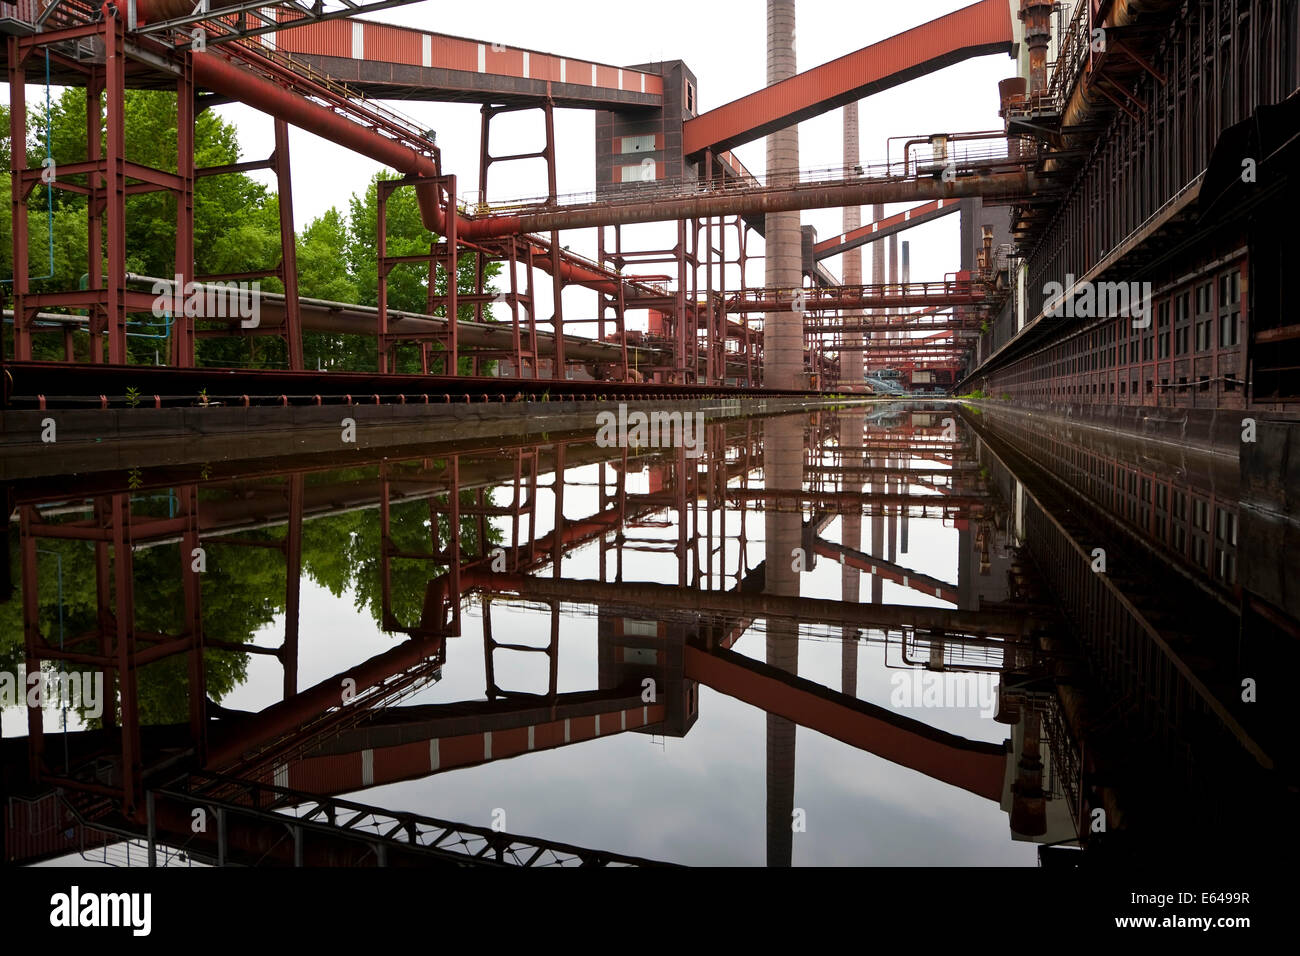 Coking Plant, Kokerei Zollverein, Essen, Ruhr Valley, Ruhr, Northrhine Westphalia, Germany - Stock Image